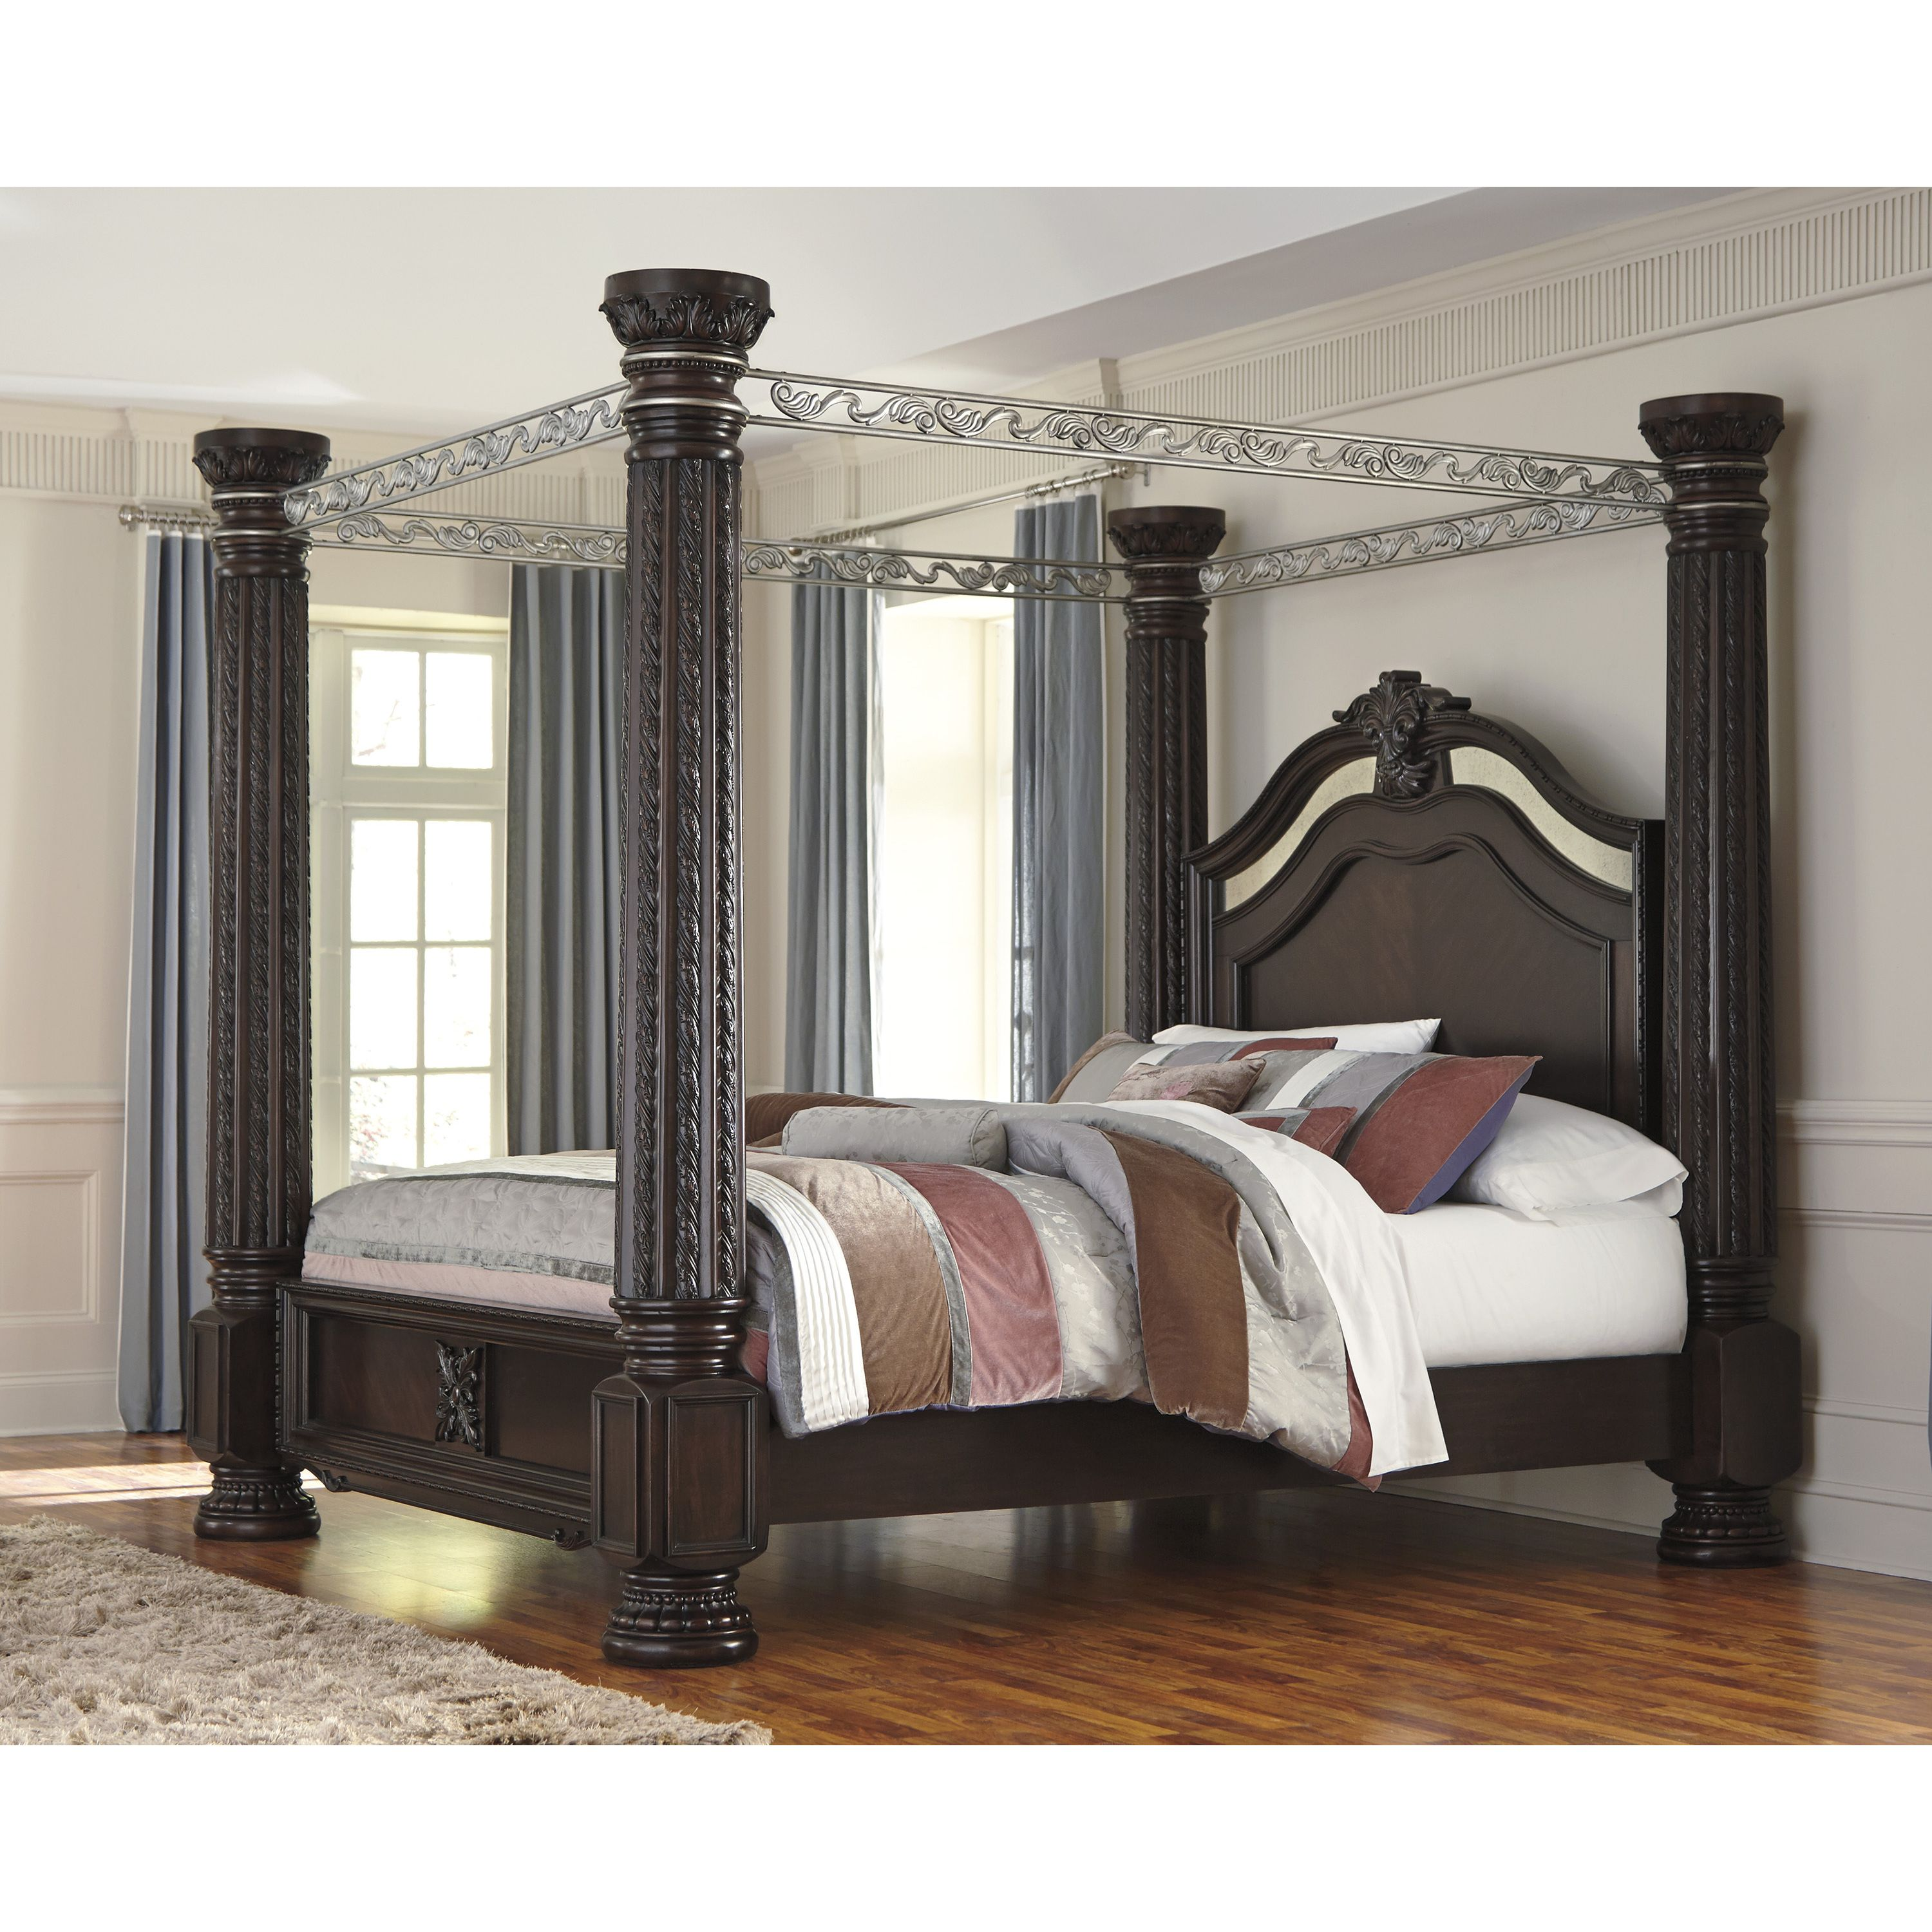 Signature Design By Ashley Presents This Beautiful, Traditional Style  Poster Bed Set. The Poster Design With Its Four Posts And Canopy Top Will  Compliment ...